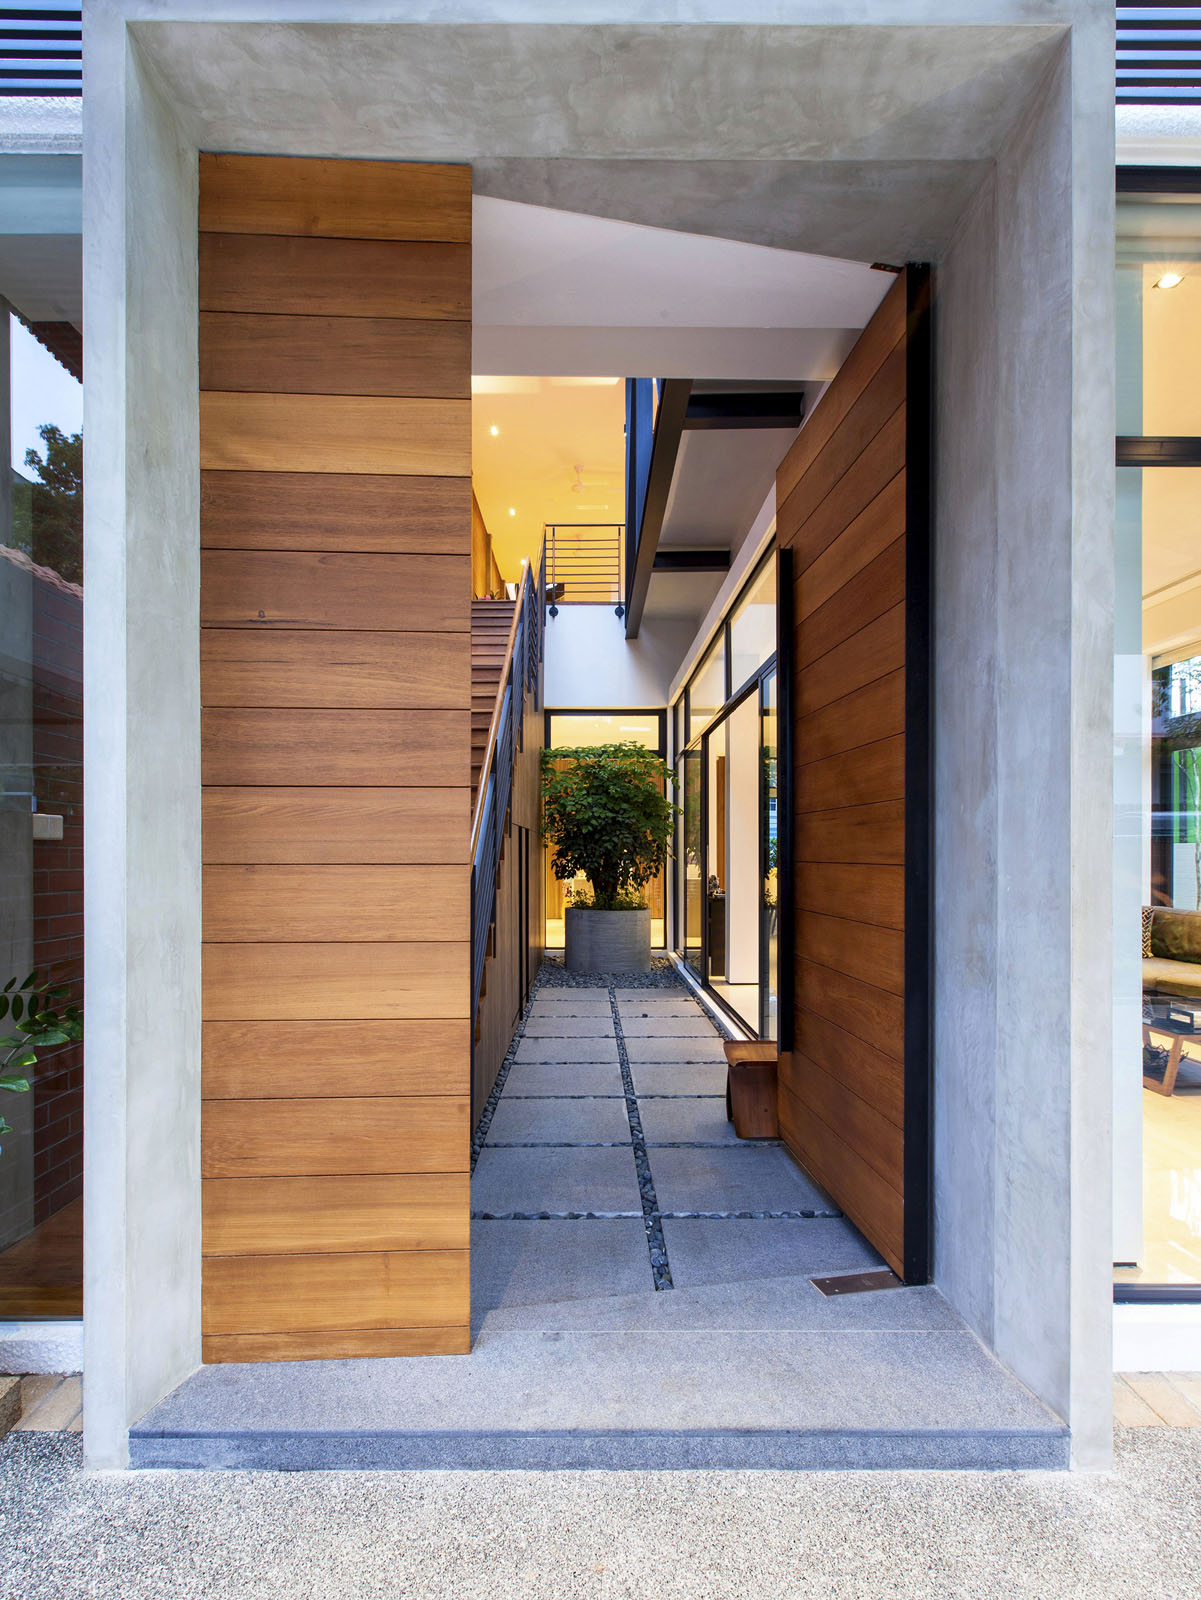 A SemiDetached House In Singapore Connects To Its